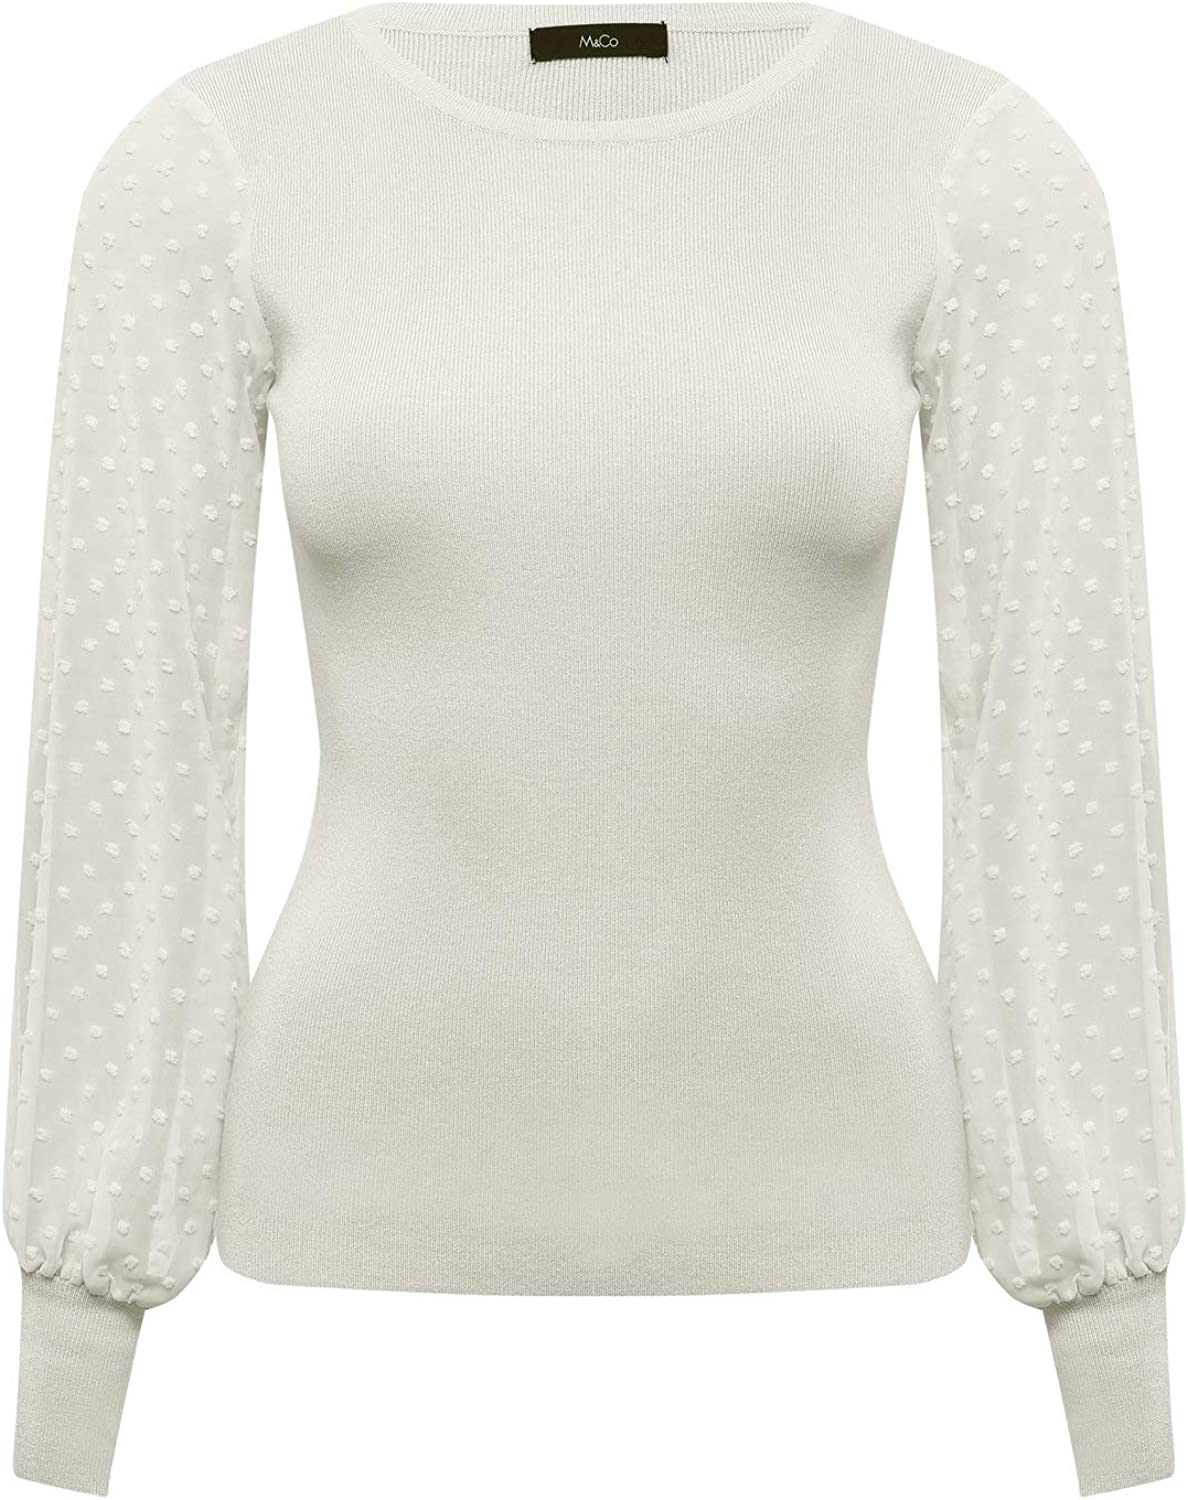 M&Co Ladies Dobby Sleeve Jumper with Crew Neck Long Sleeve